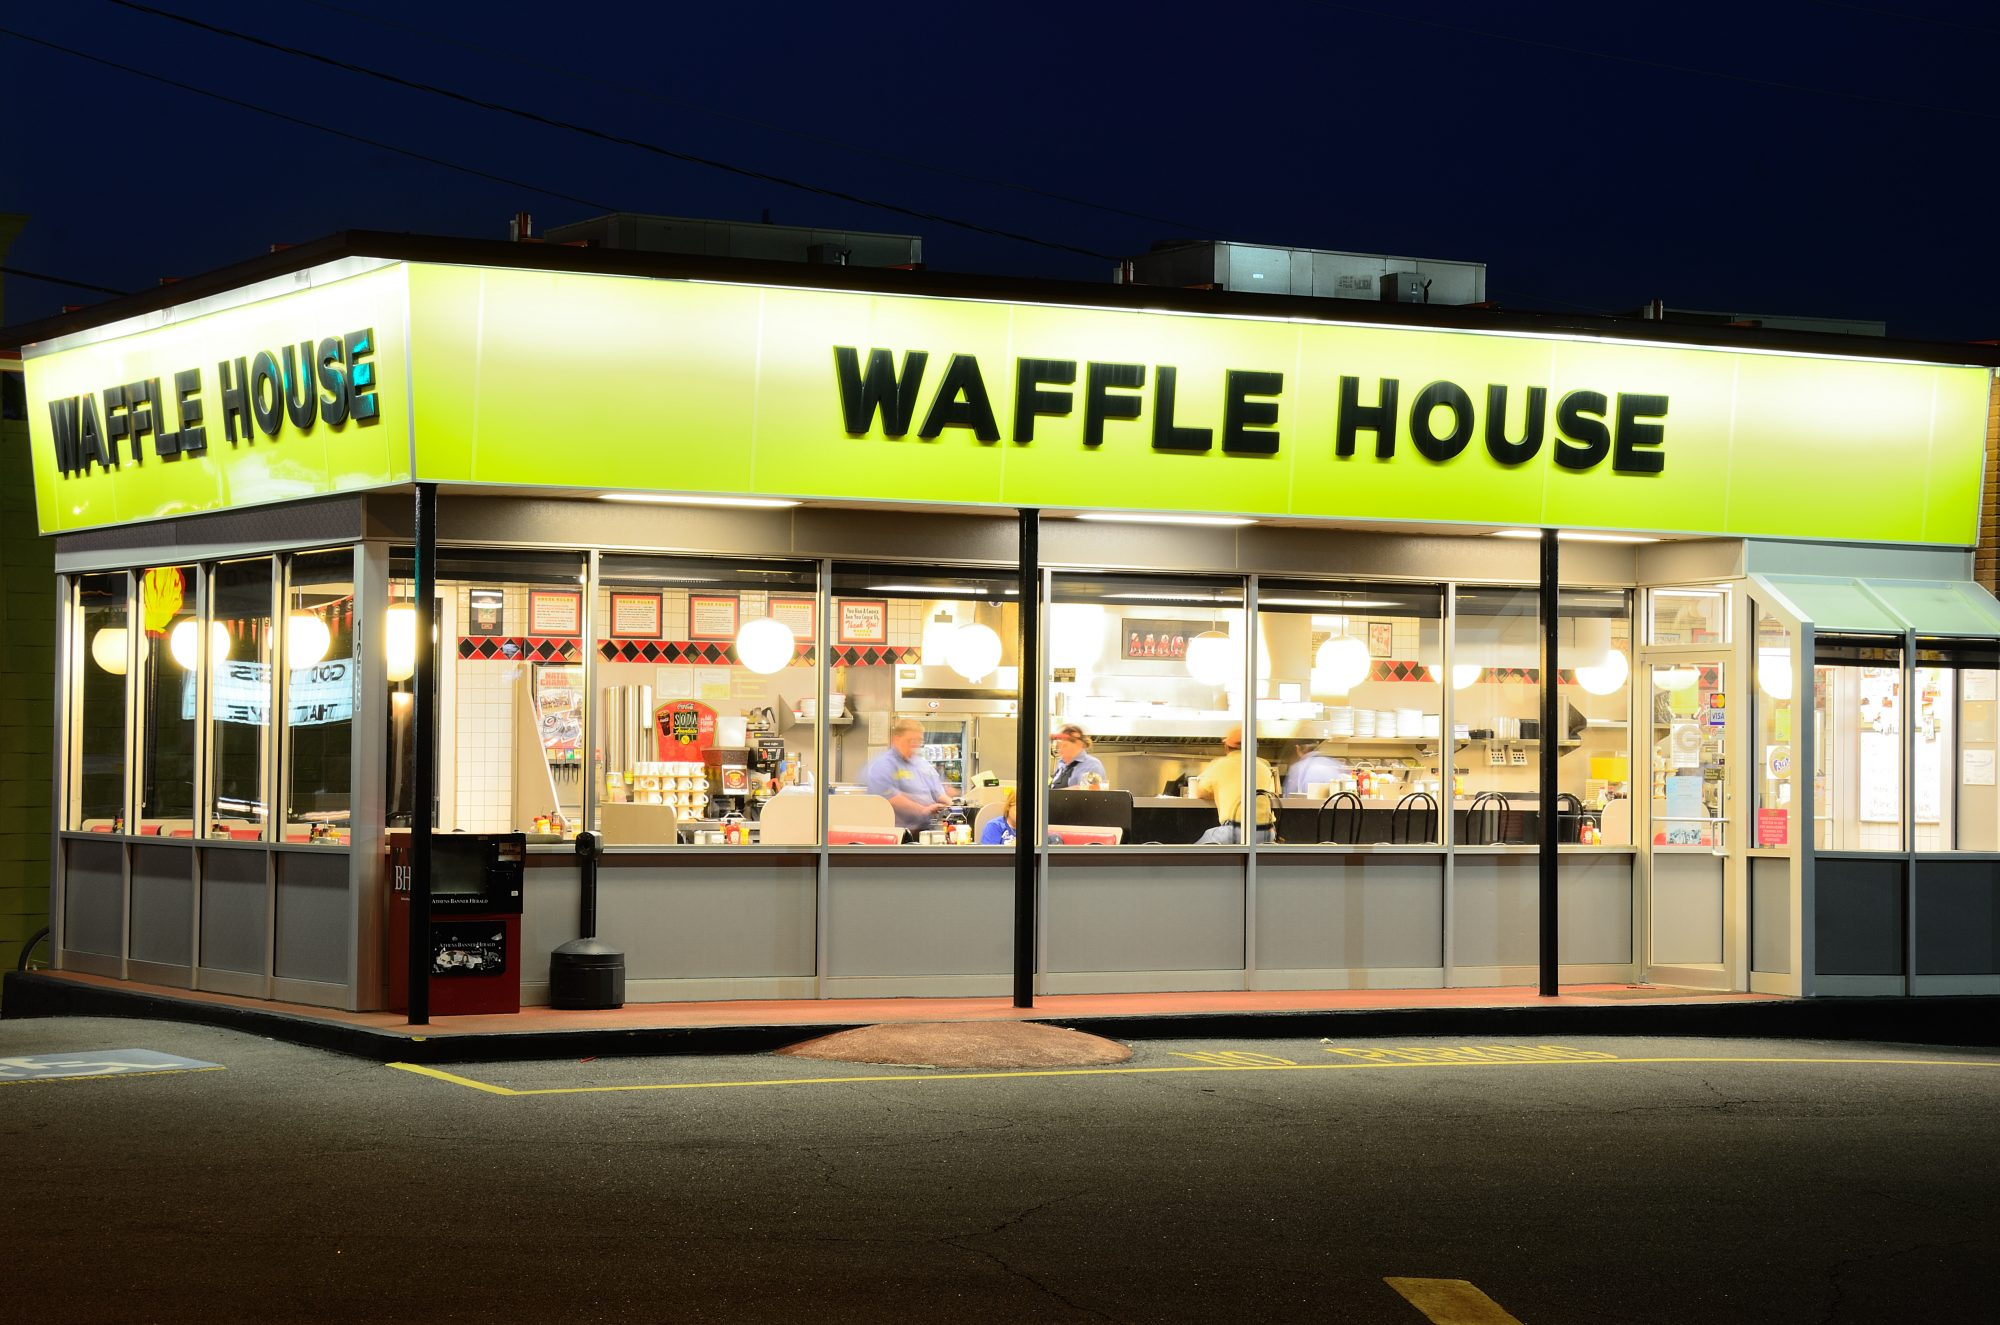 WATCH: Whoa! Waffle House Has A Crazy Condiments Code We Never Knew About